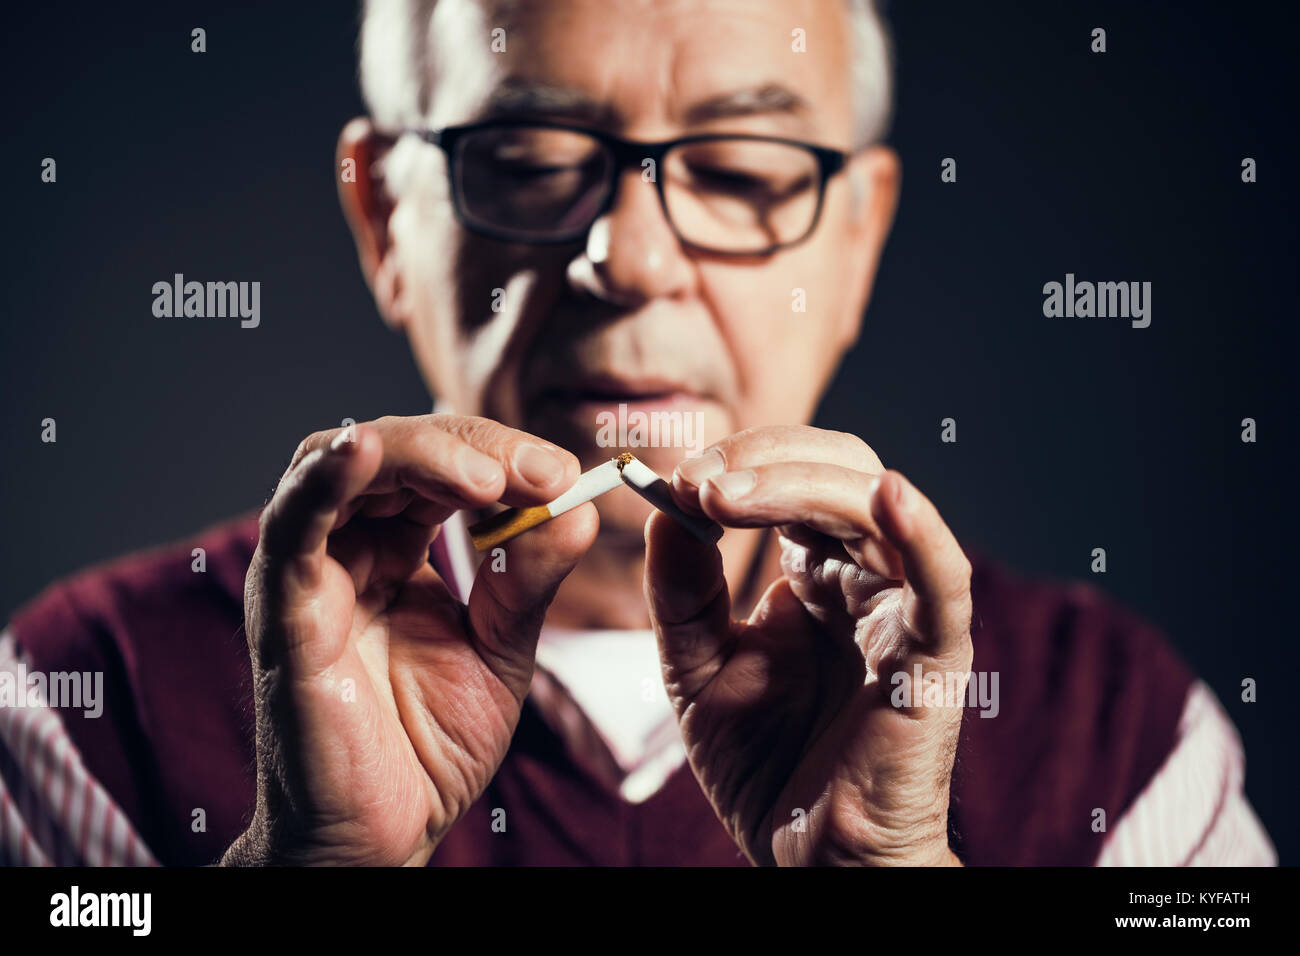 Close up image of senior man who is decided to quit smoking. - Stock Image